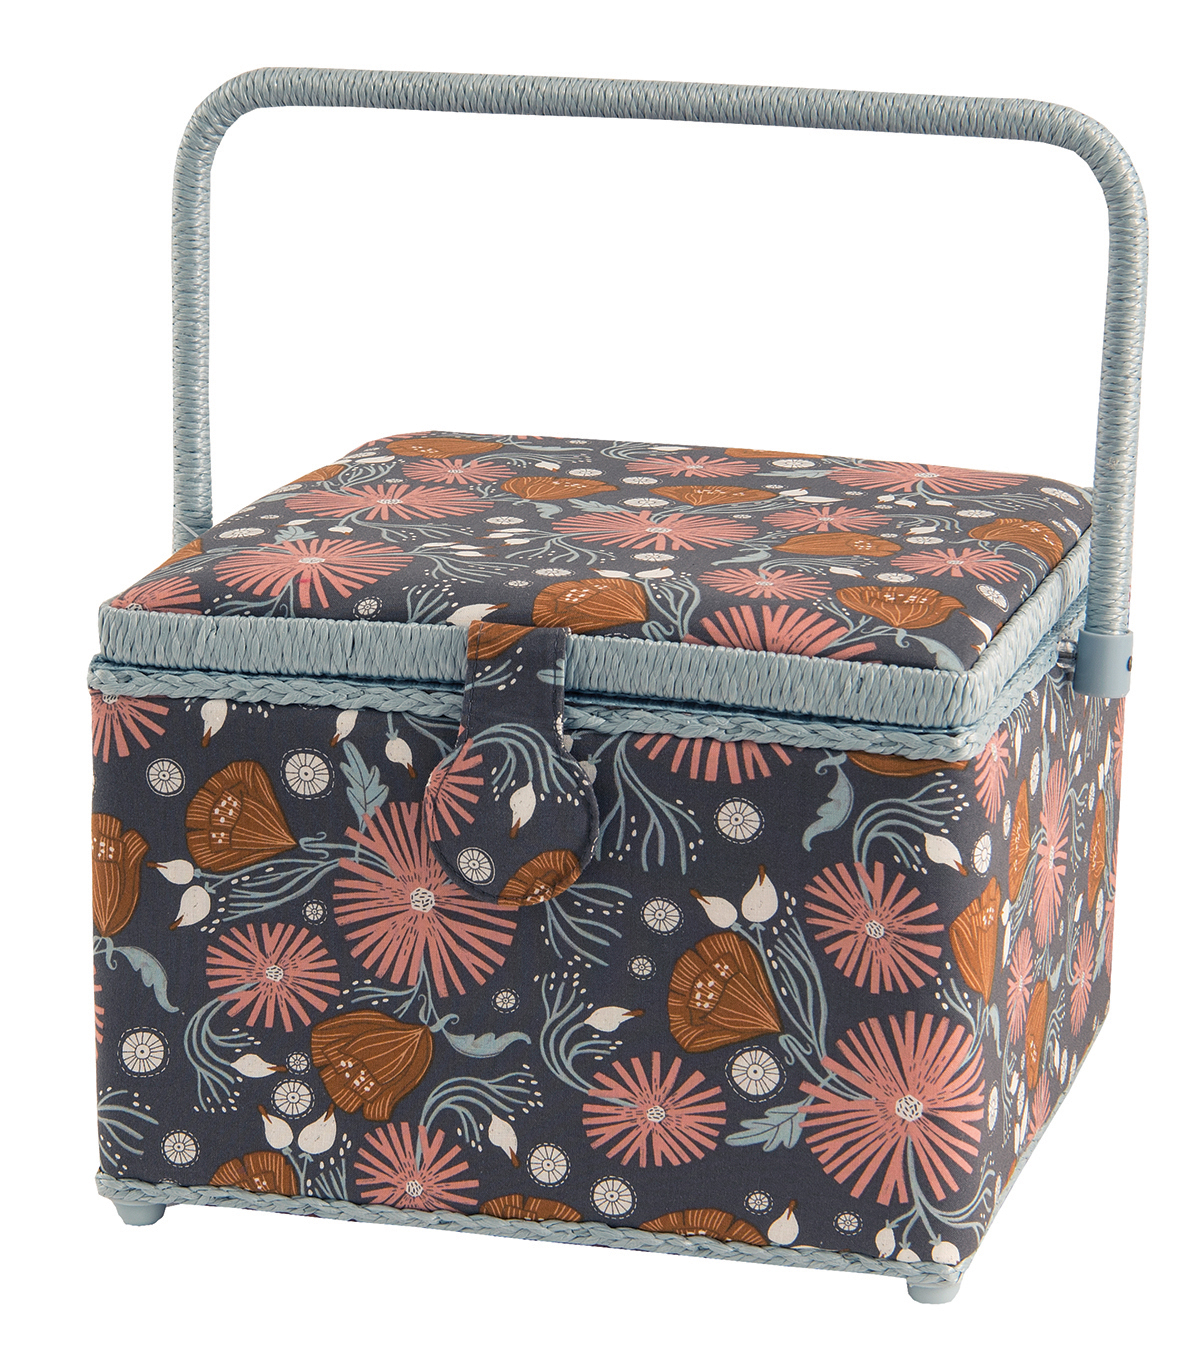 Sewing Basket Large Square-Brown Floral